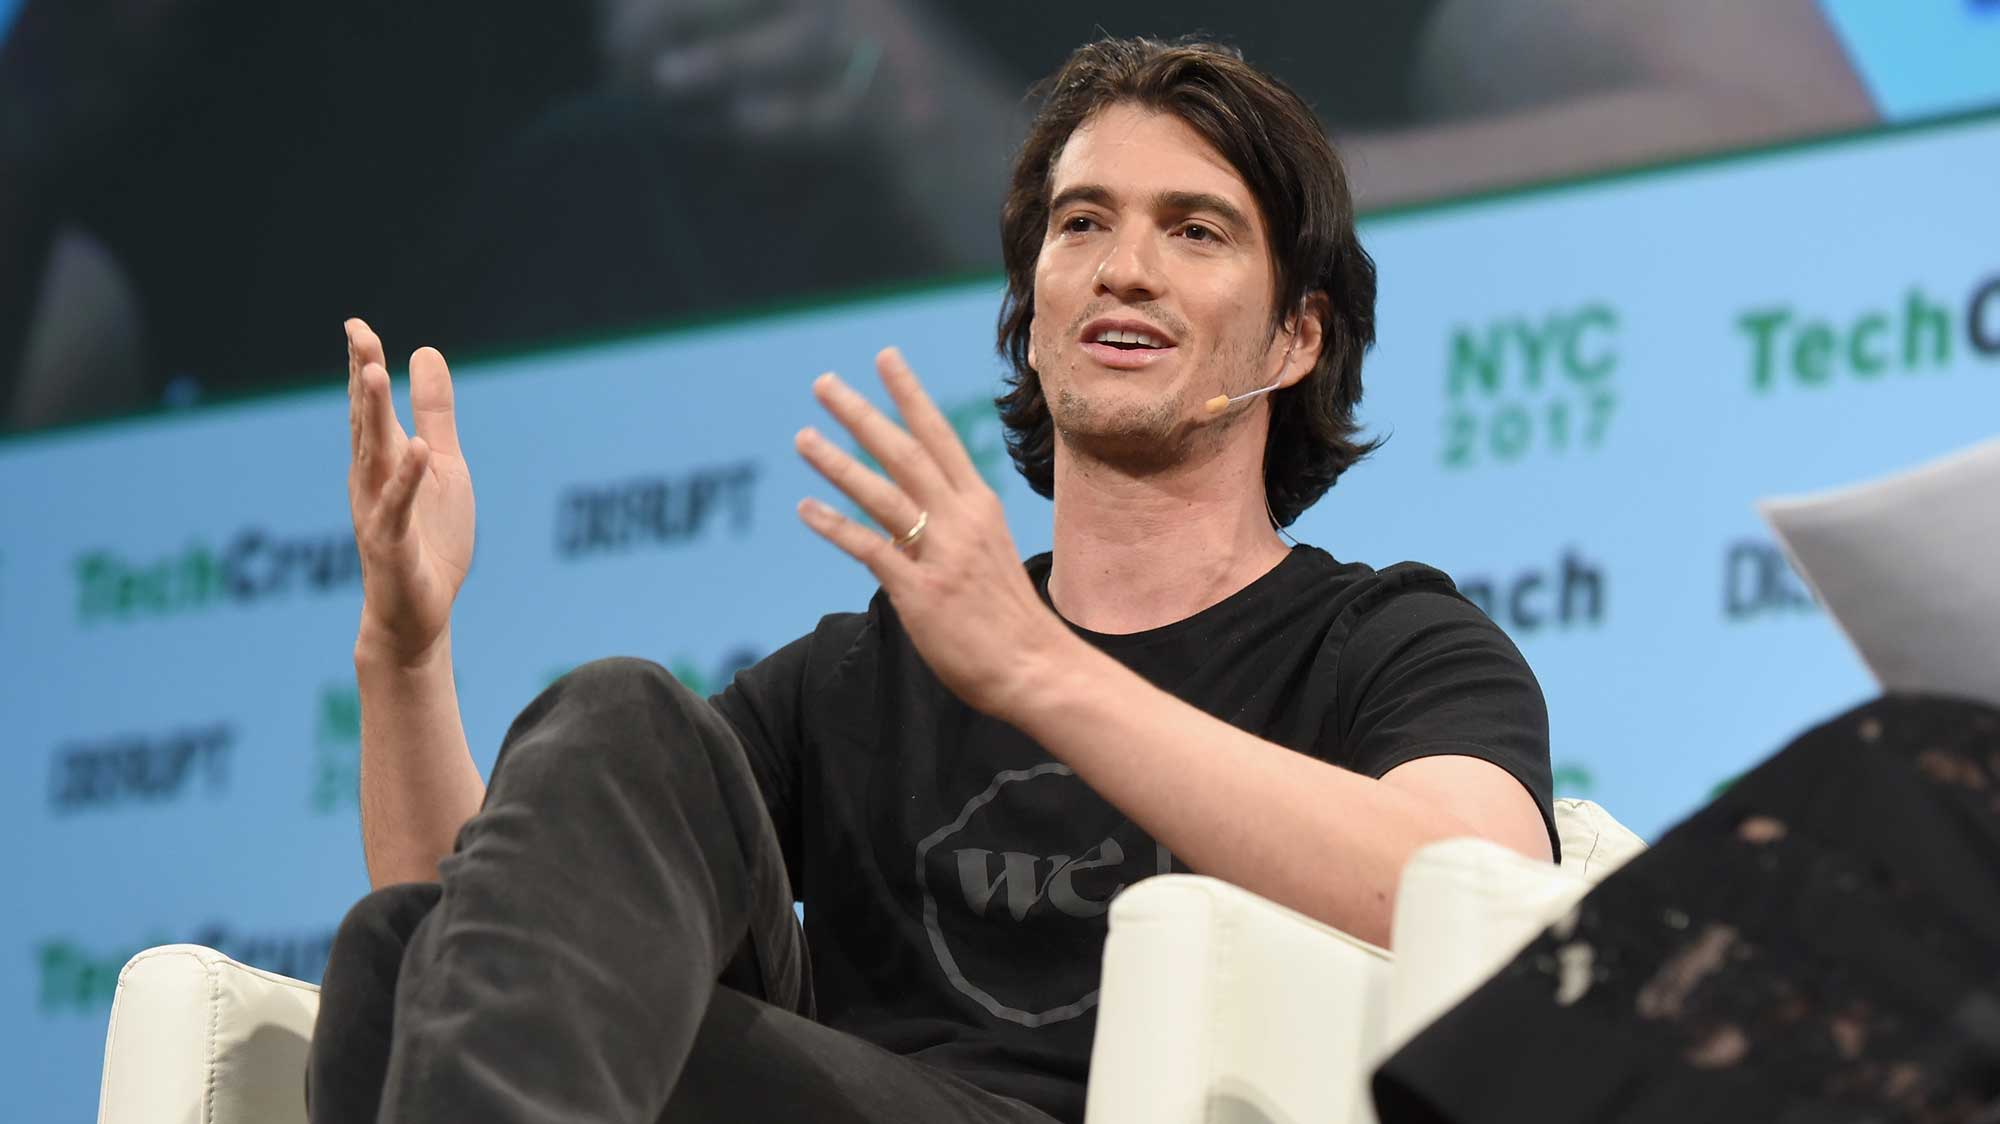 WeWork just dropped its filing to go public, revealing its financials ahead of IPO